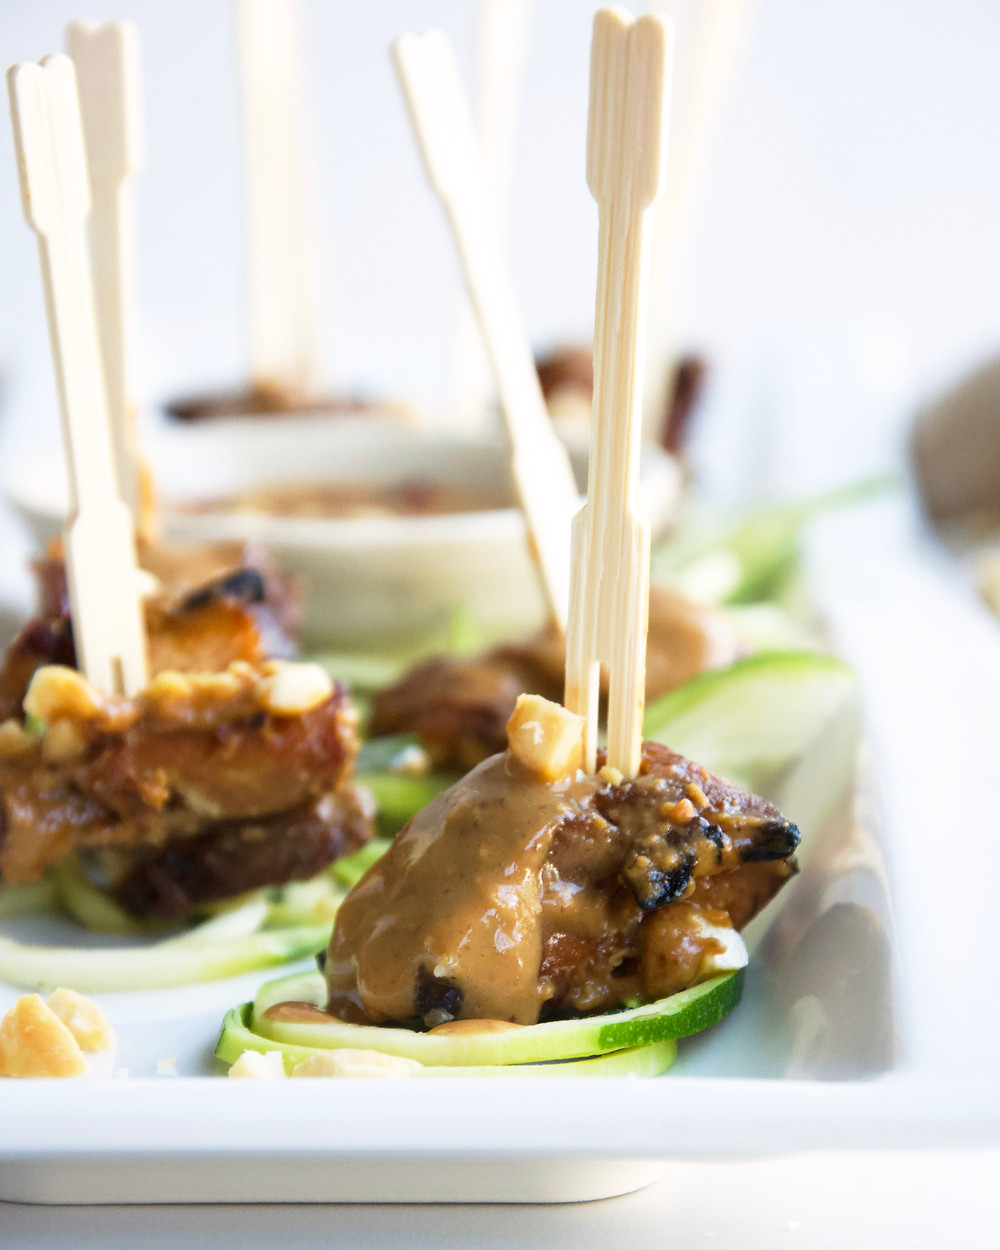 Chicken satay pieces on cocktail sticks. Served with peanut sauce.